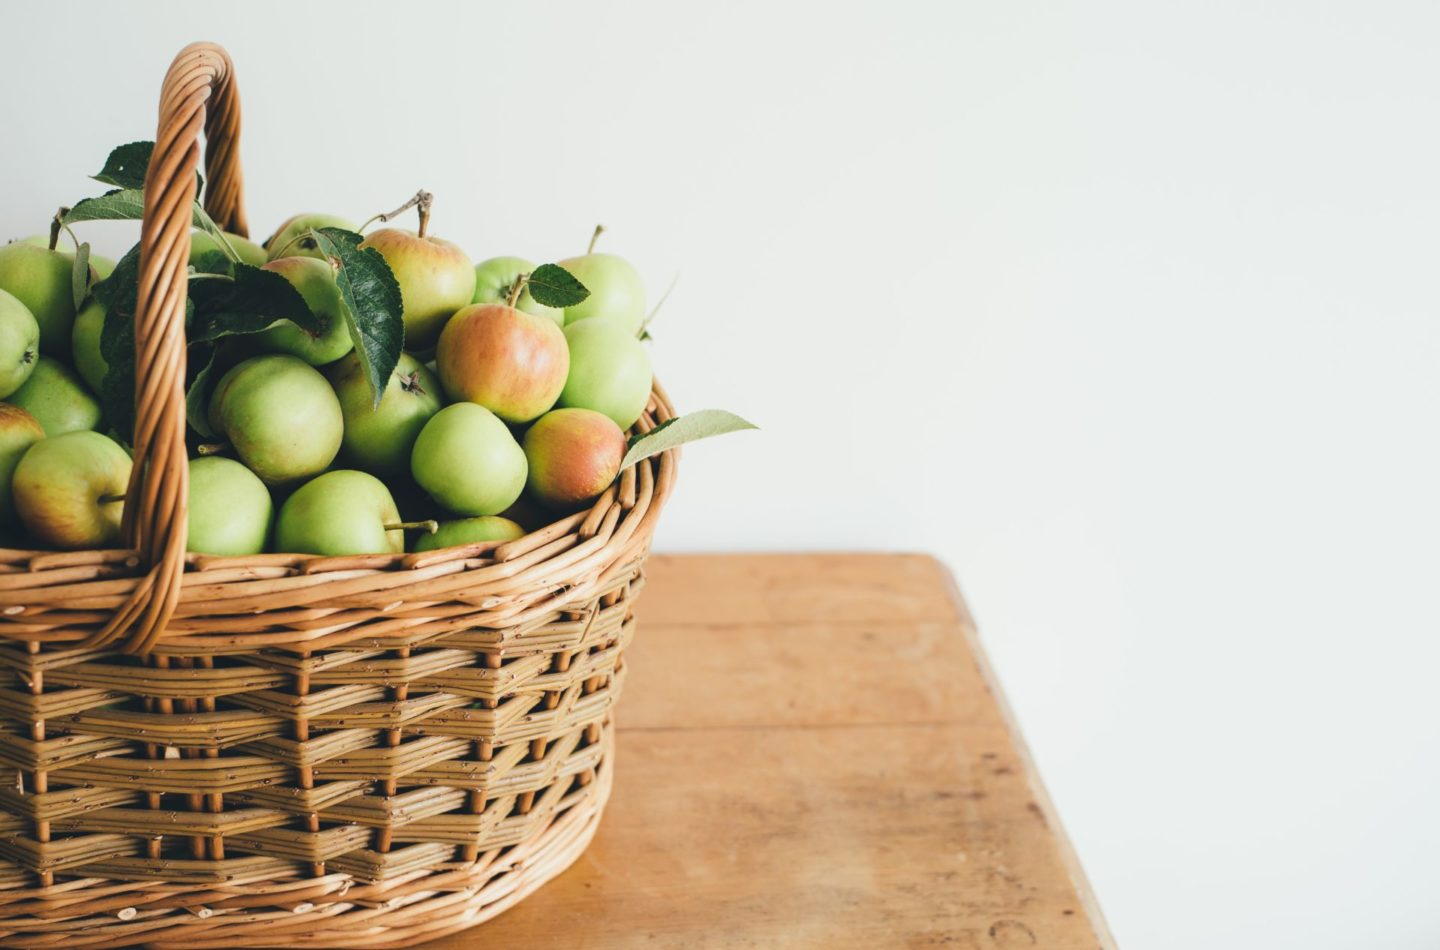 Basket full of green apples on a wooden table.